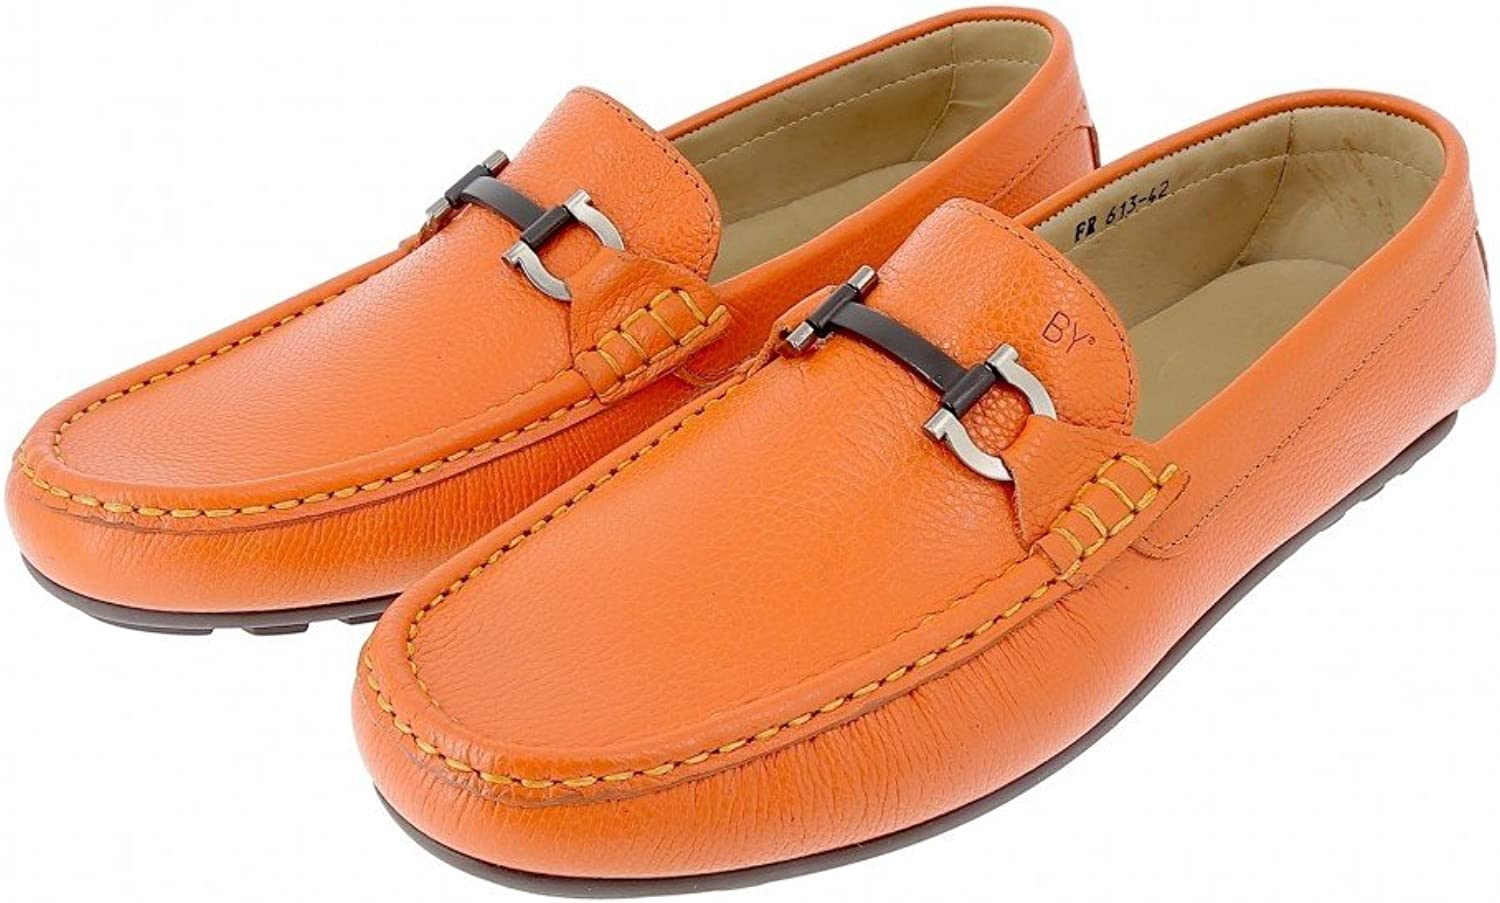 Belym Men's Mog 613d Loafer Flats